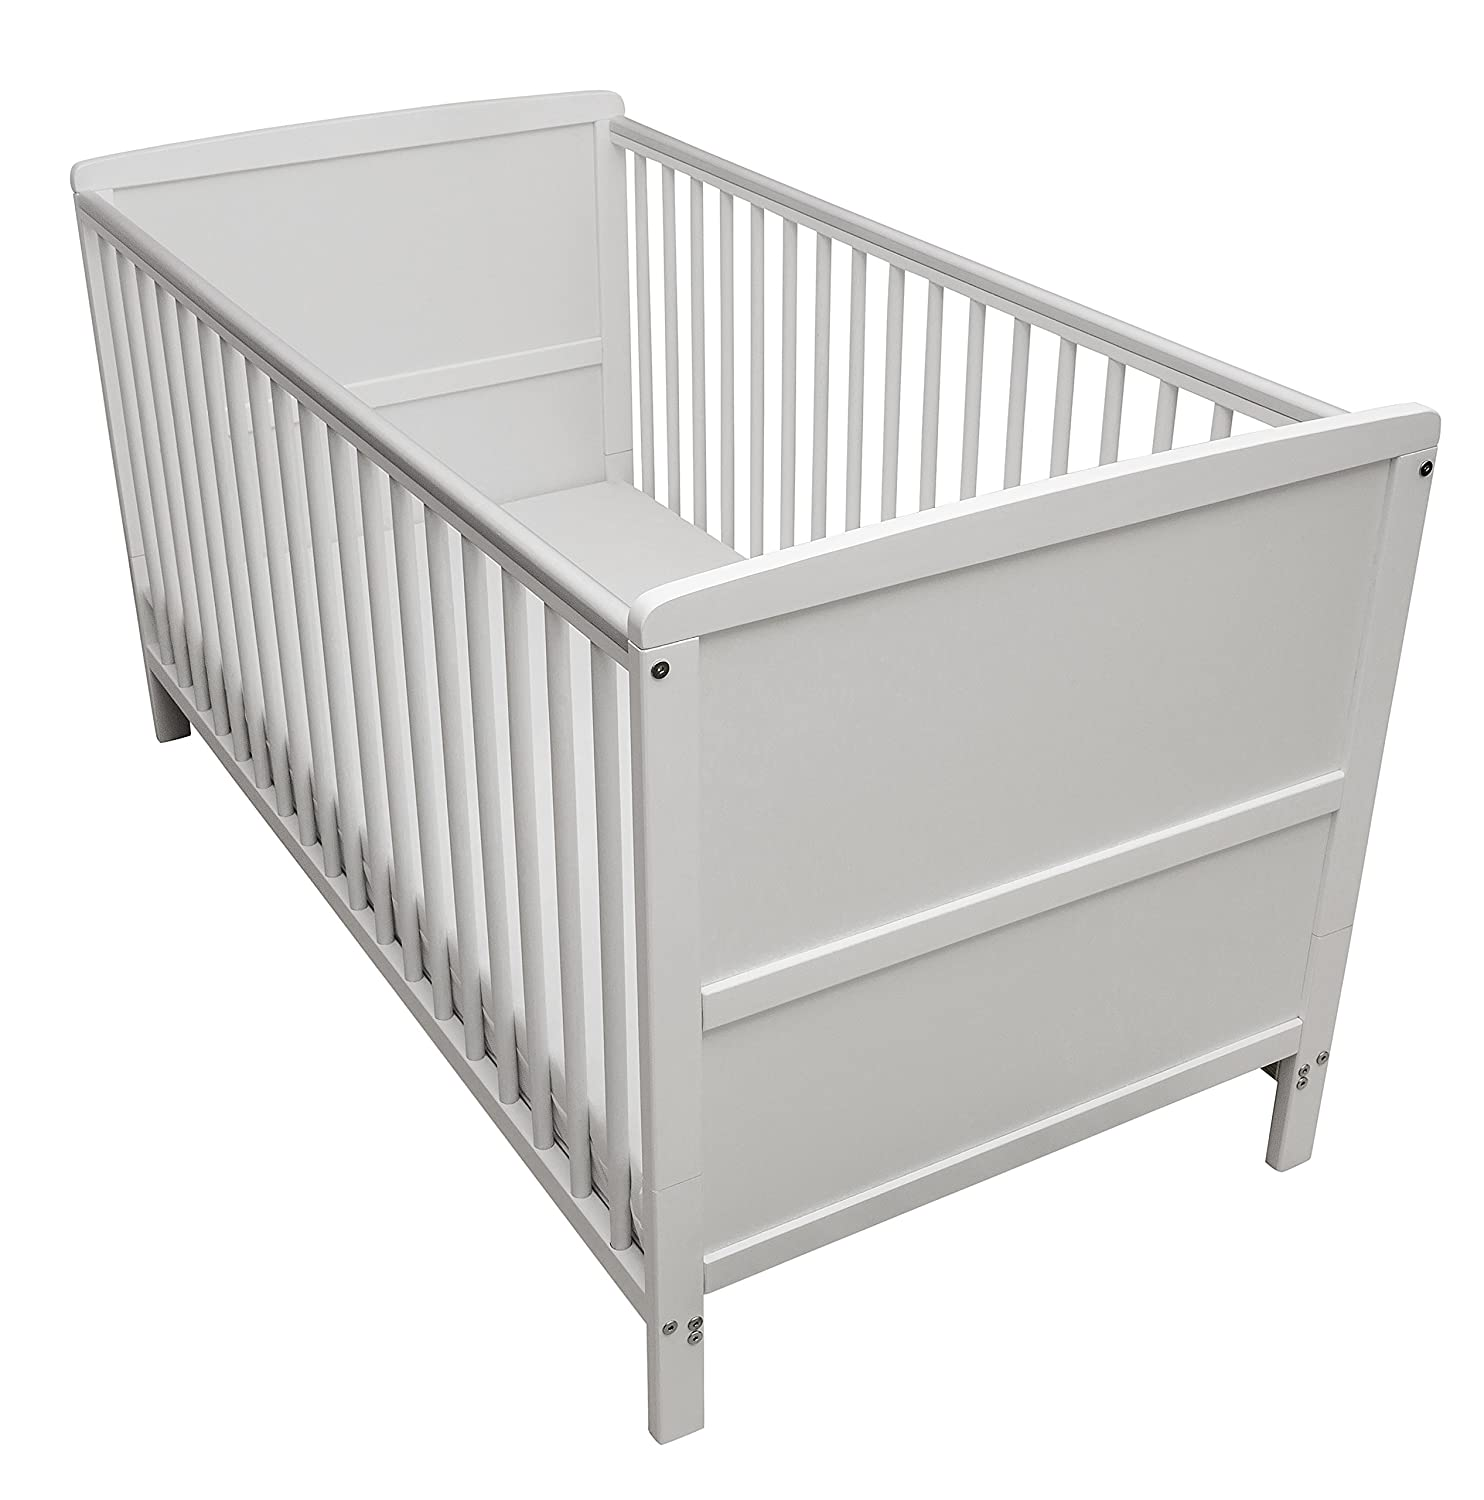 Kinder Valley Solid Pine Wood 2-in-1 Junior Cot Bed with a Flow Mattress, White, 144 x 76 x 80 cm 64001